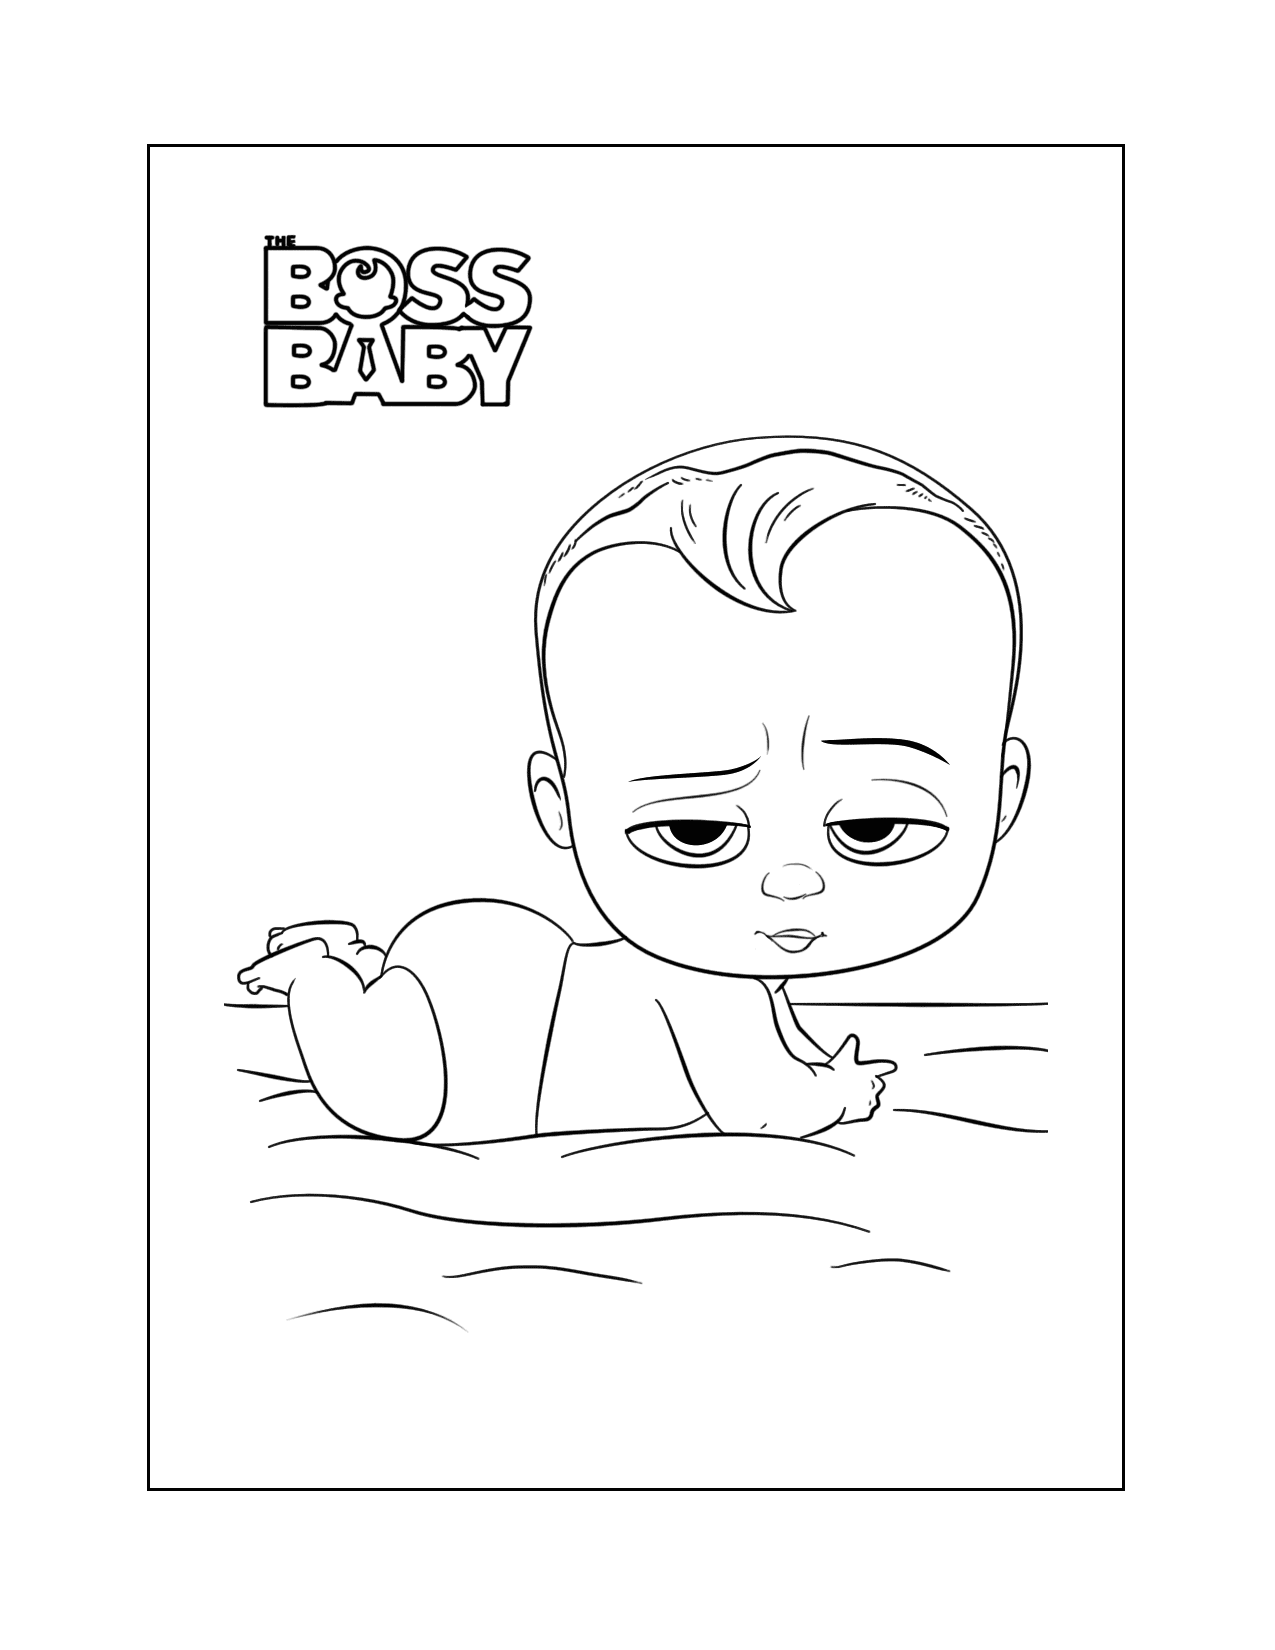 Cute Boss Baby Coloring Pages